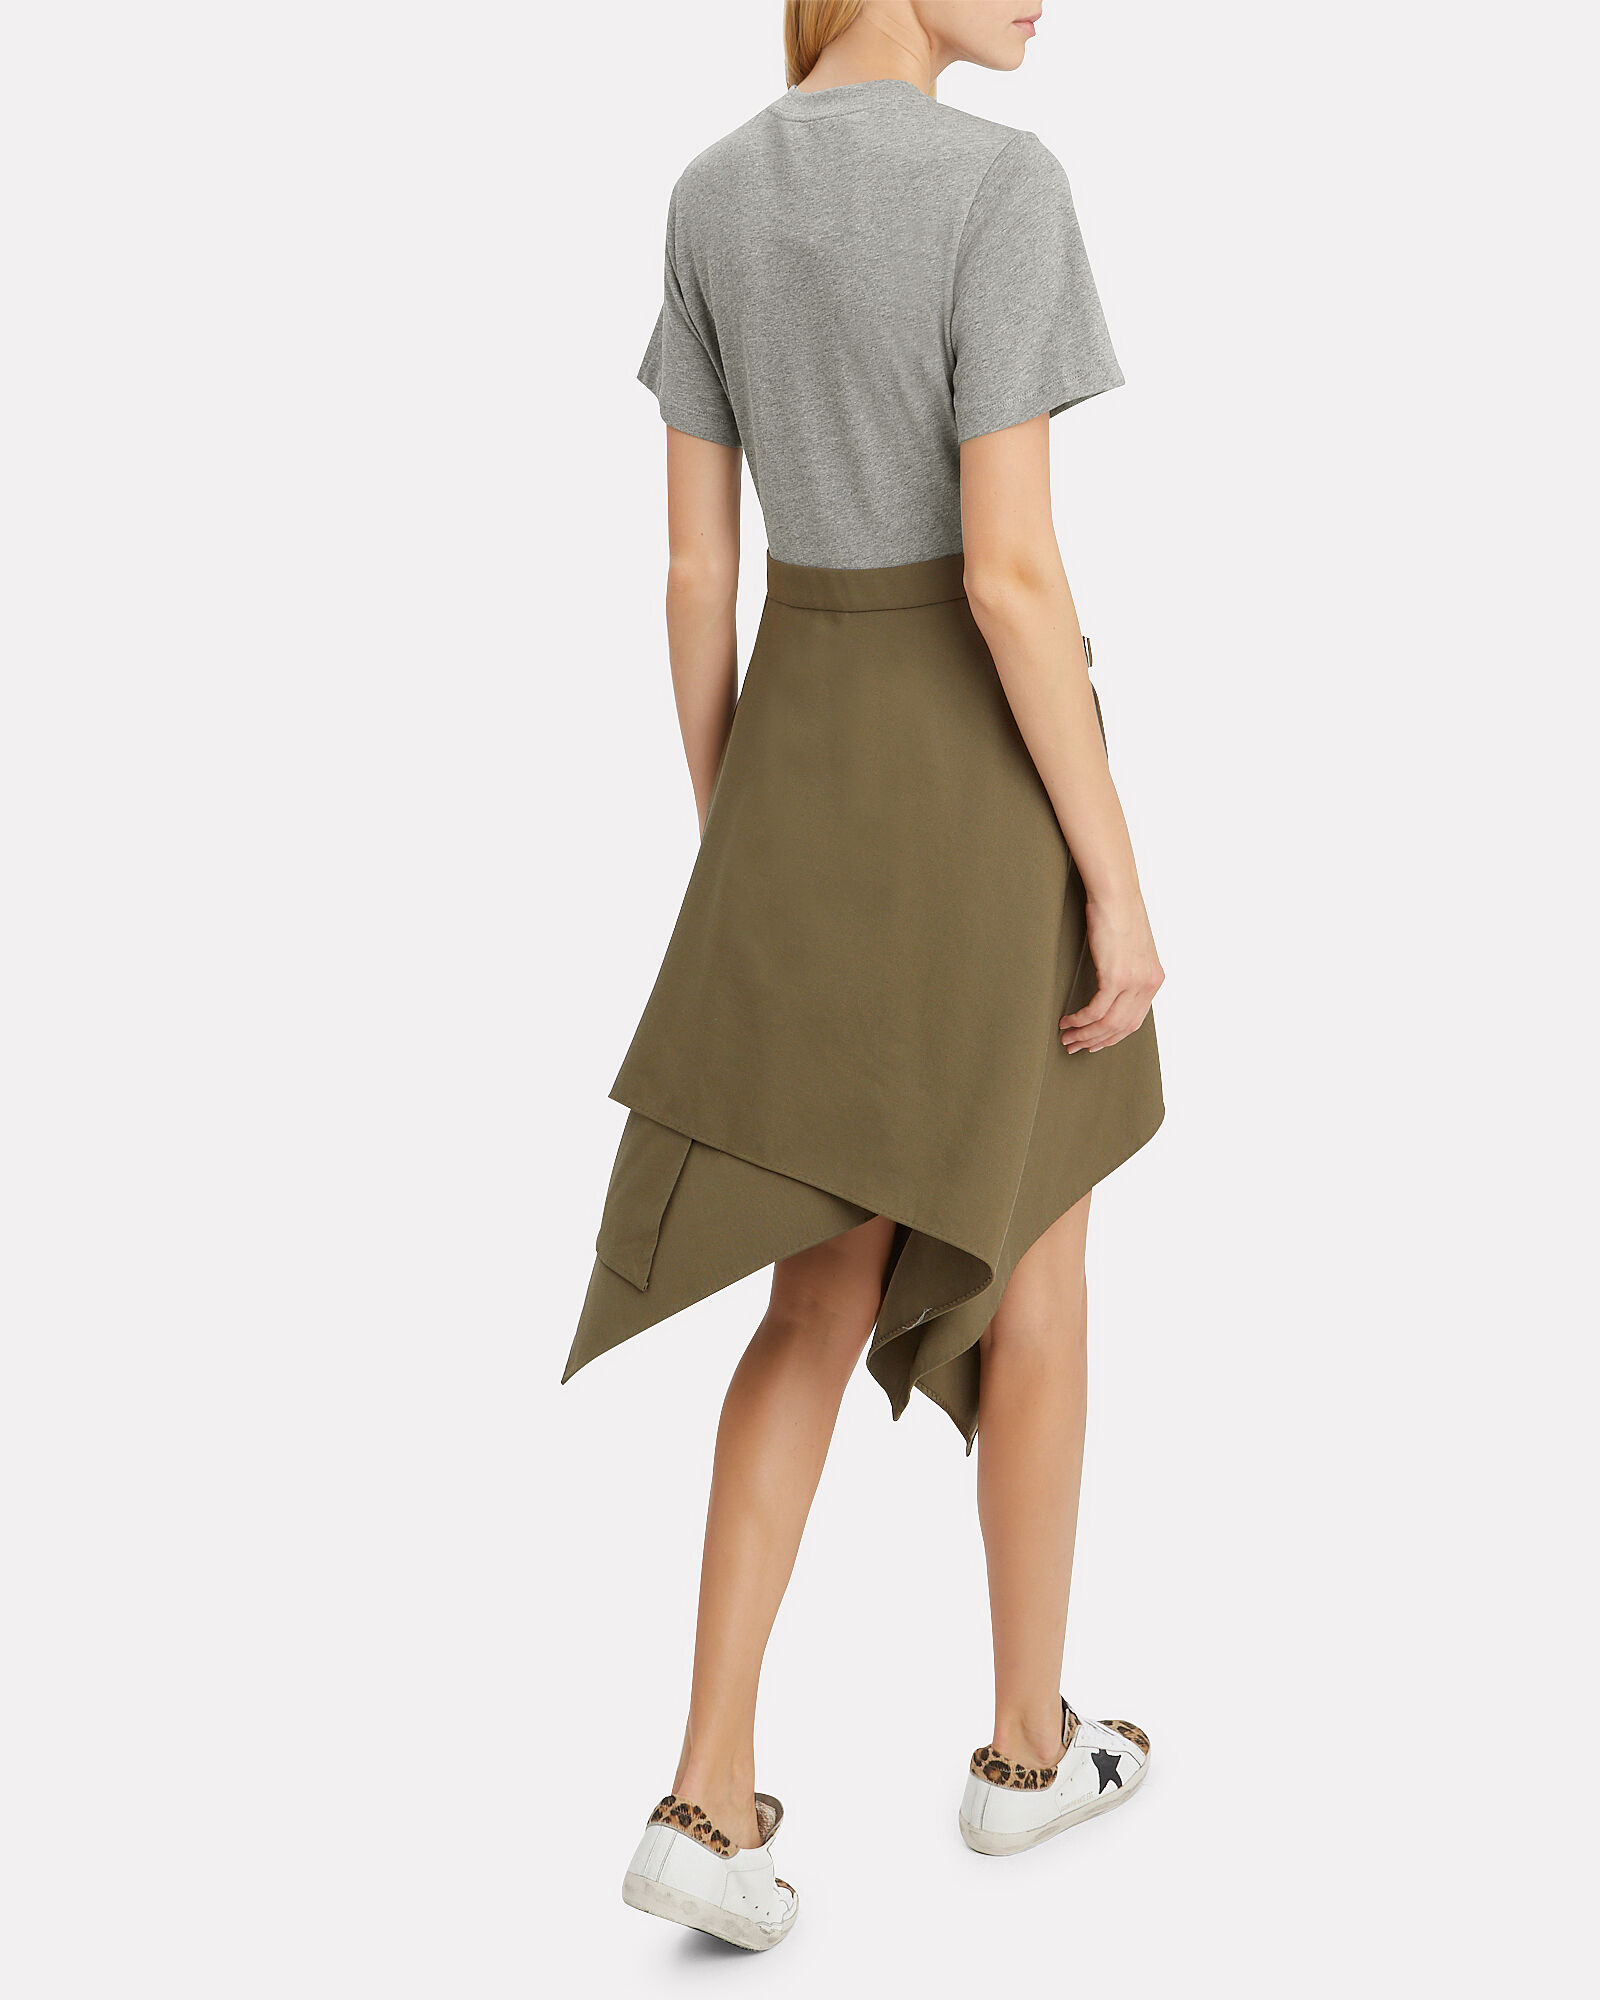 Handkerchief Dress, GREY/OLIVE, hi-res